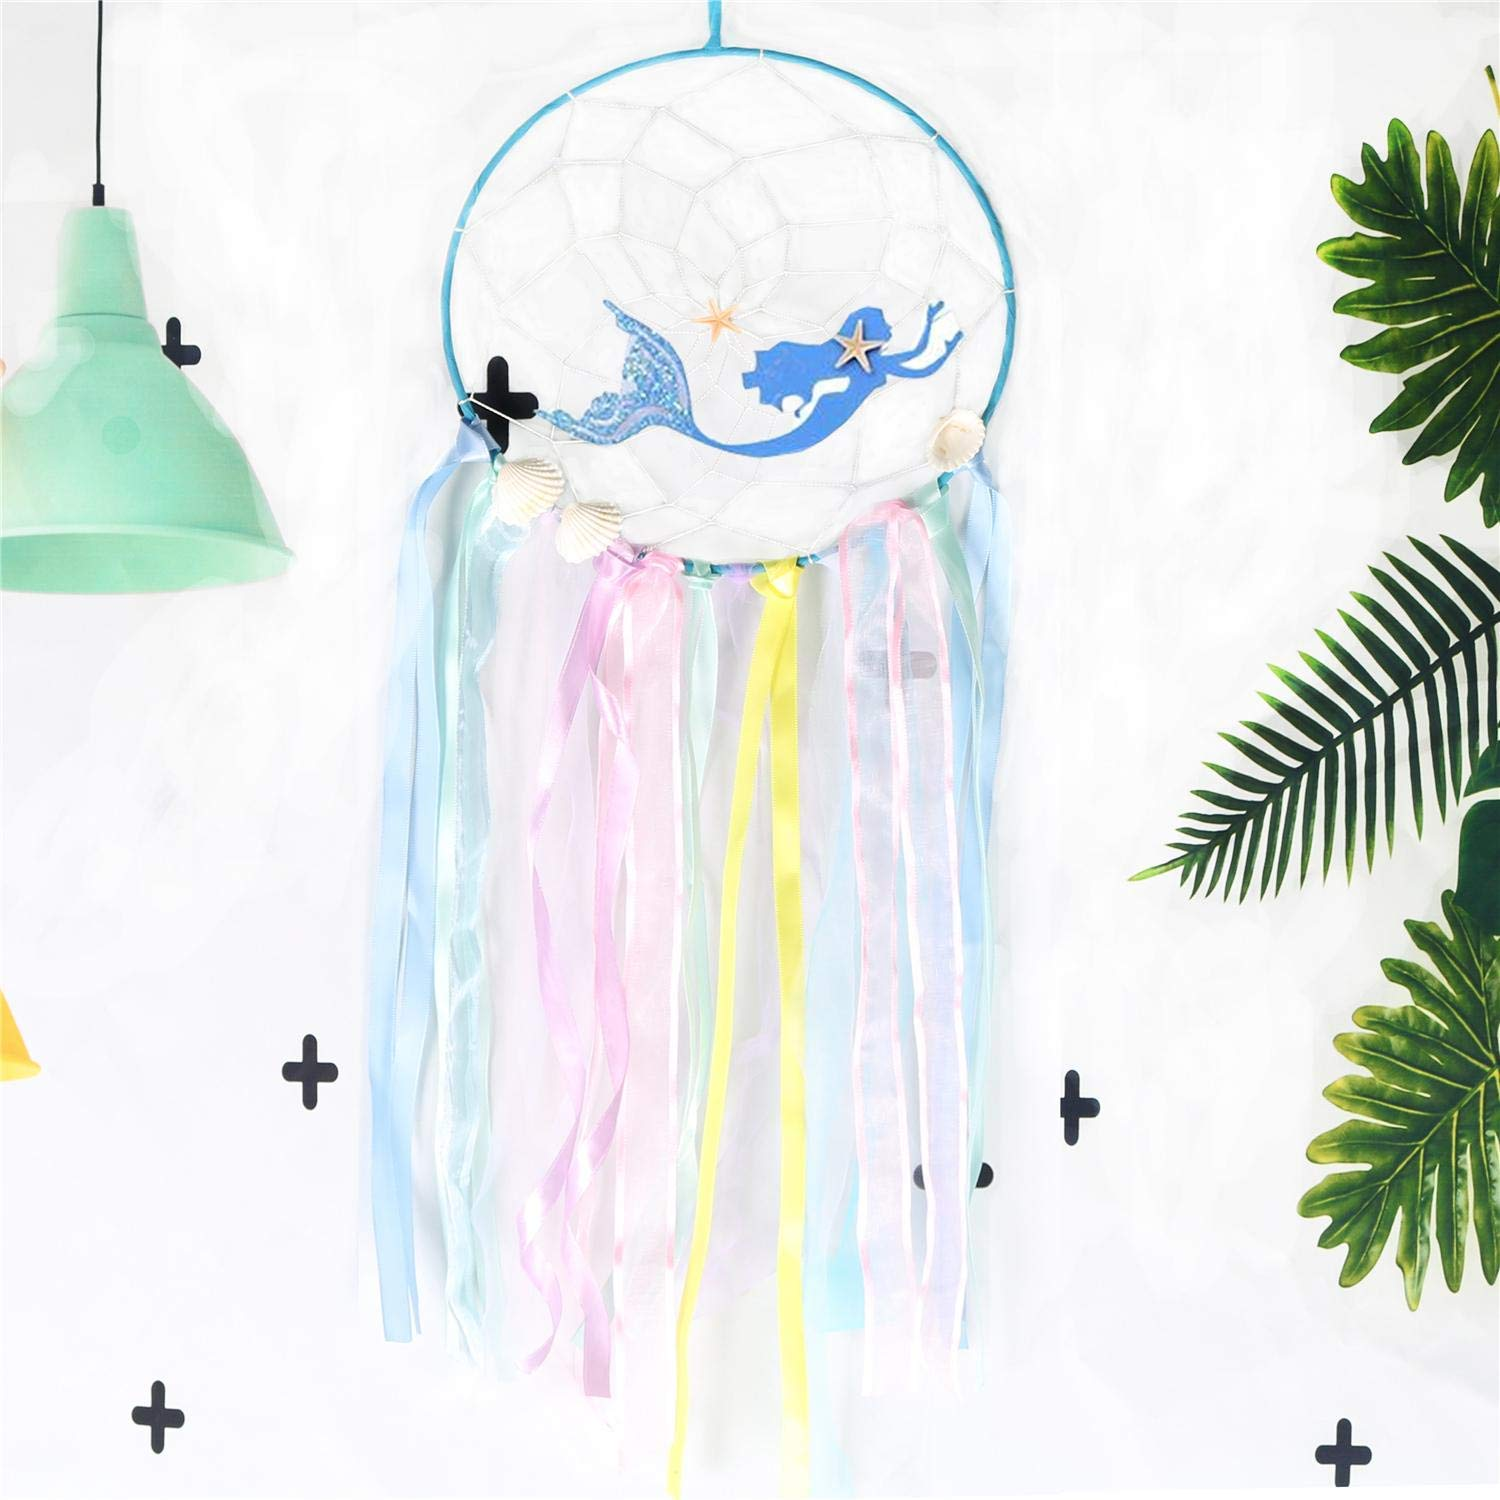 ZUEXT Mermaid Dream Catcher